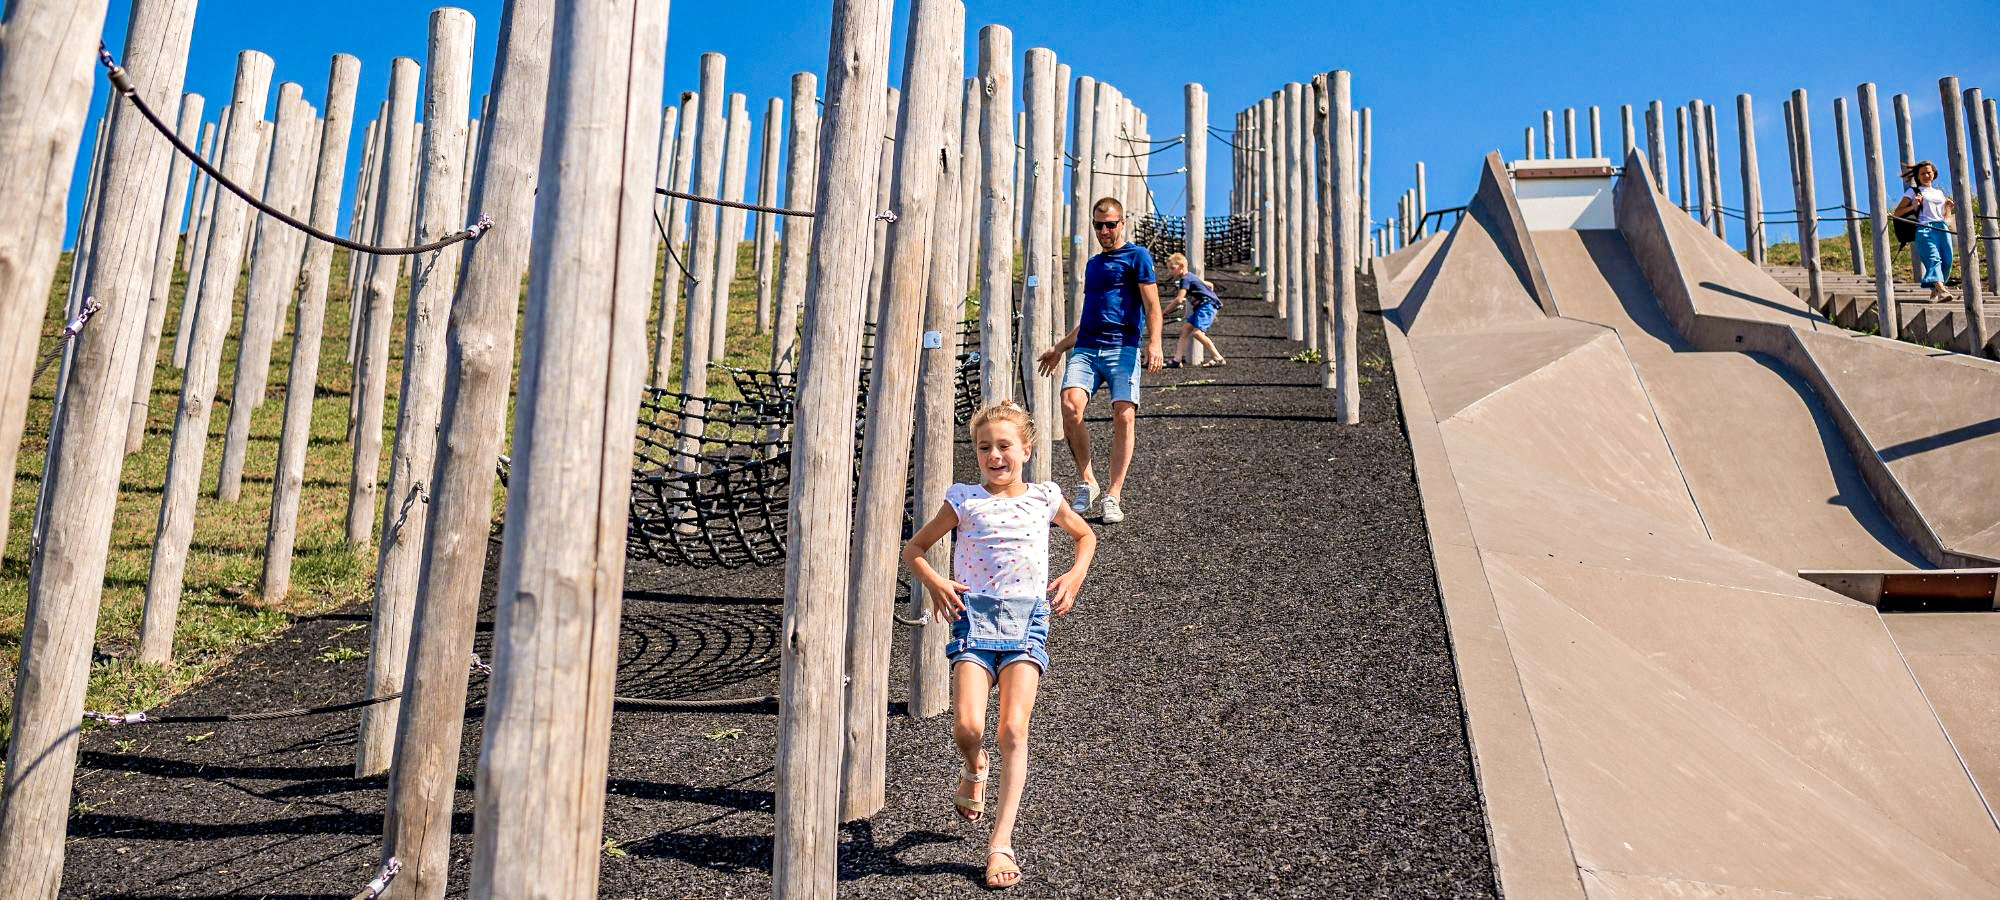 Two children and a man run down an asphalt covered slope surrounded by wooden poles with blue sky in the background.